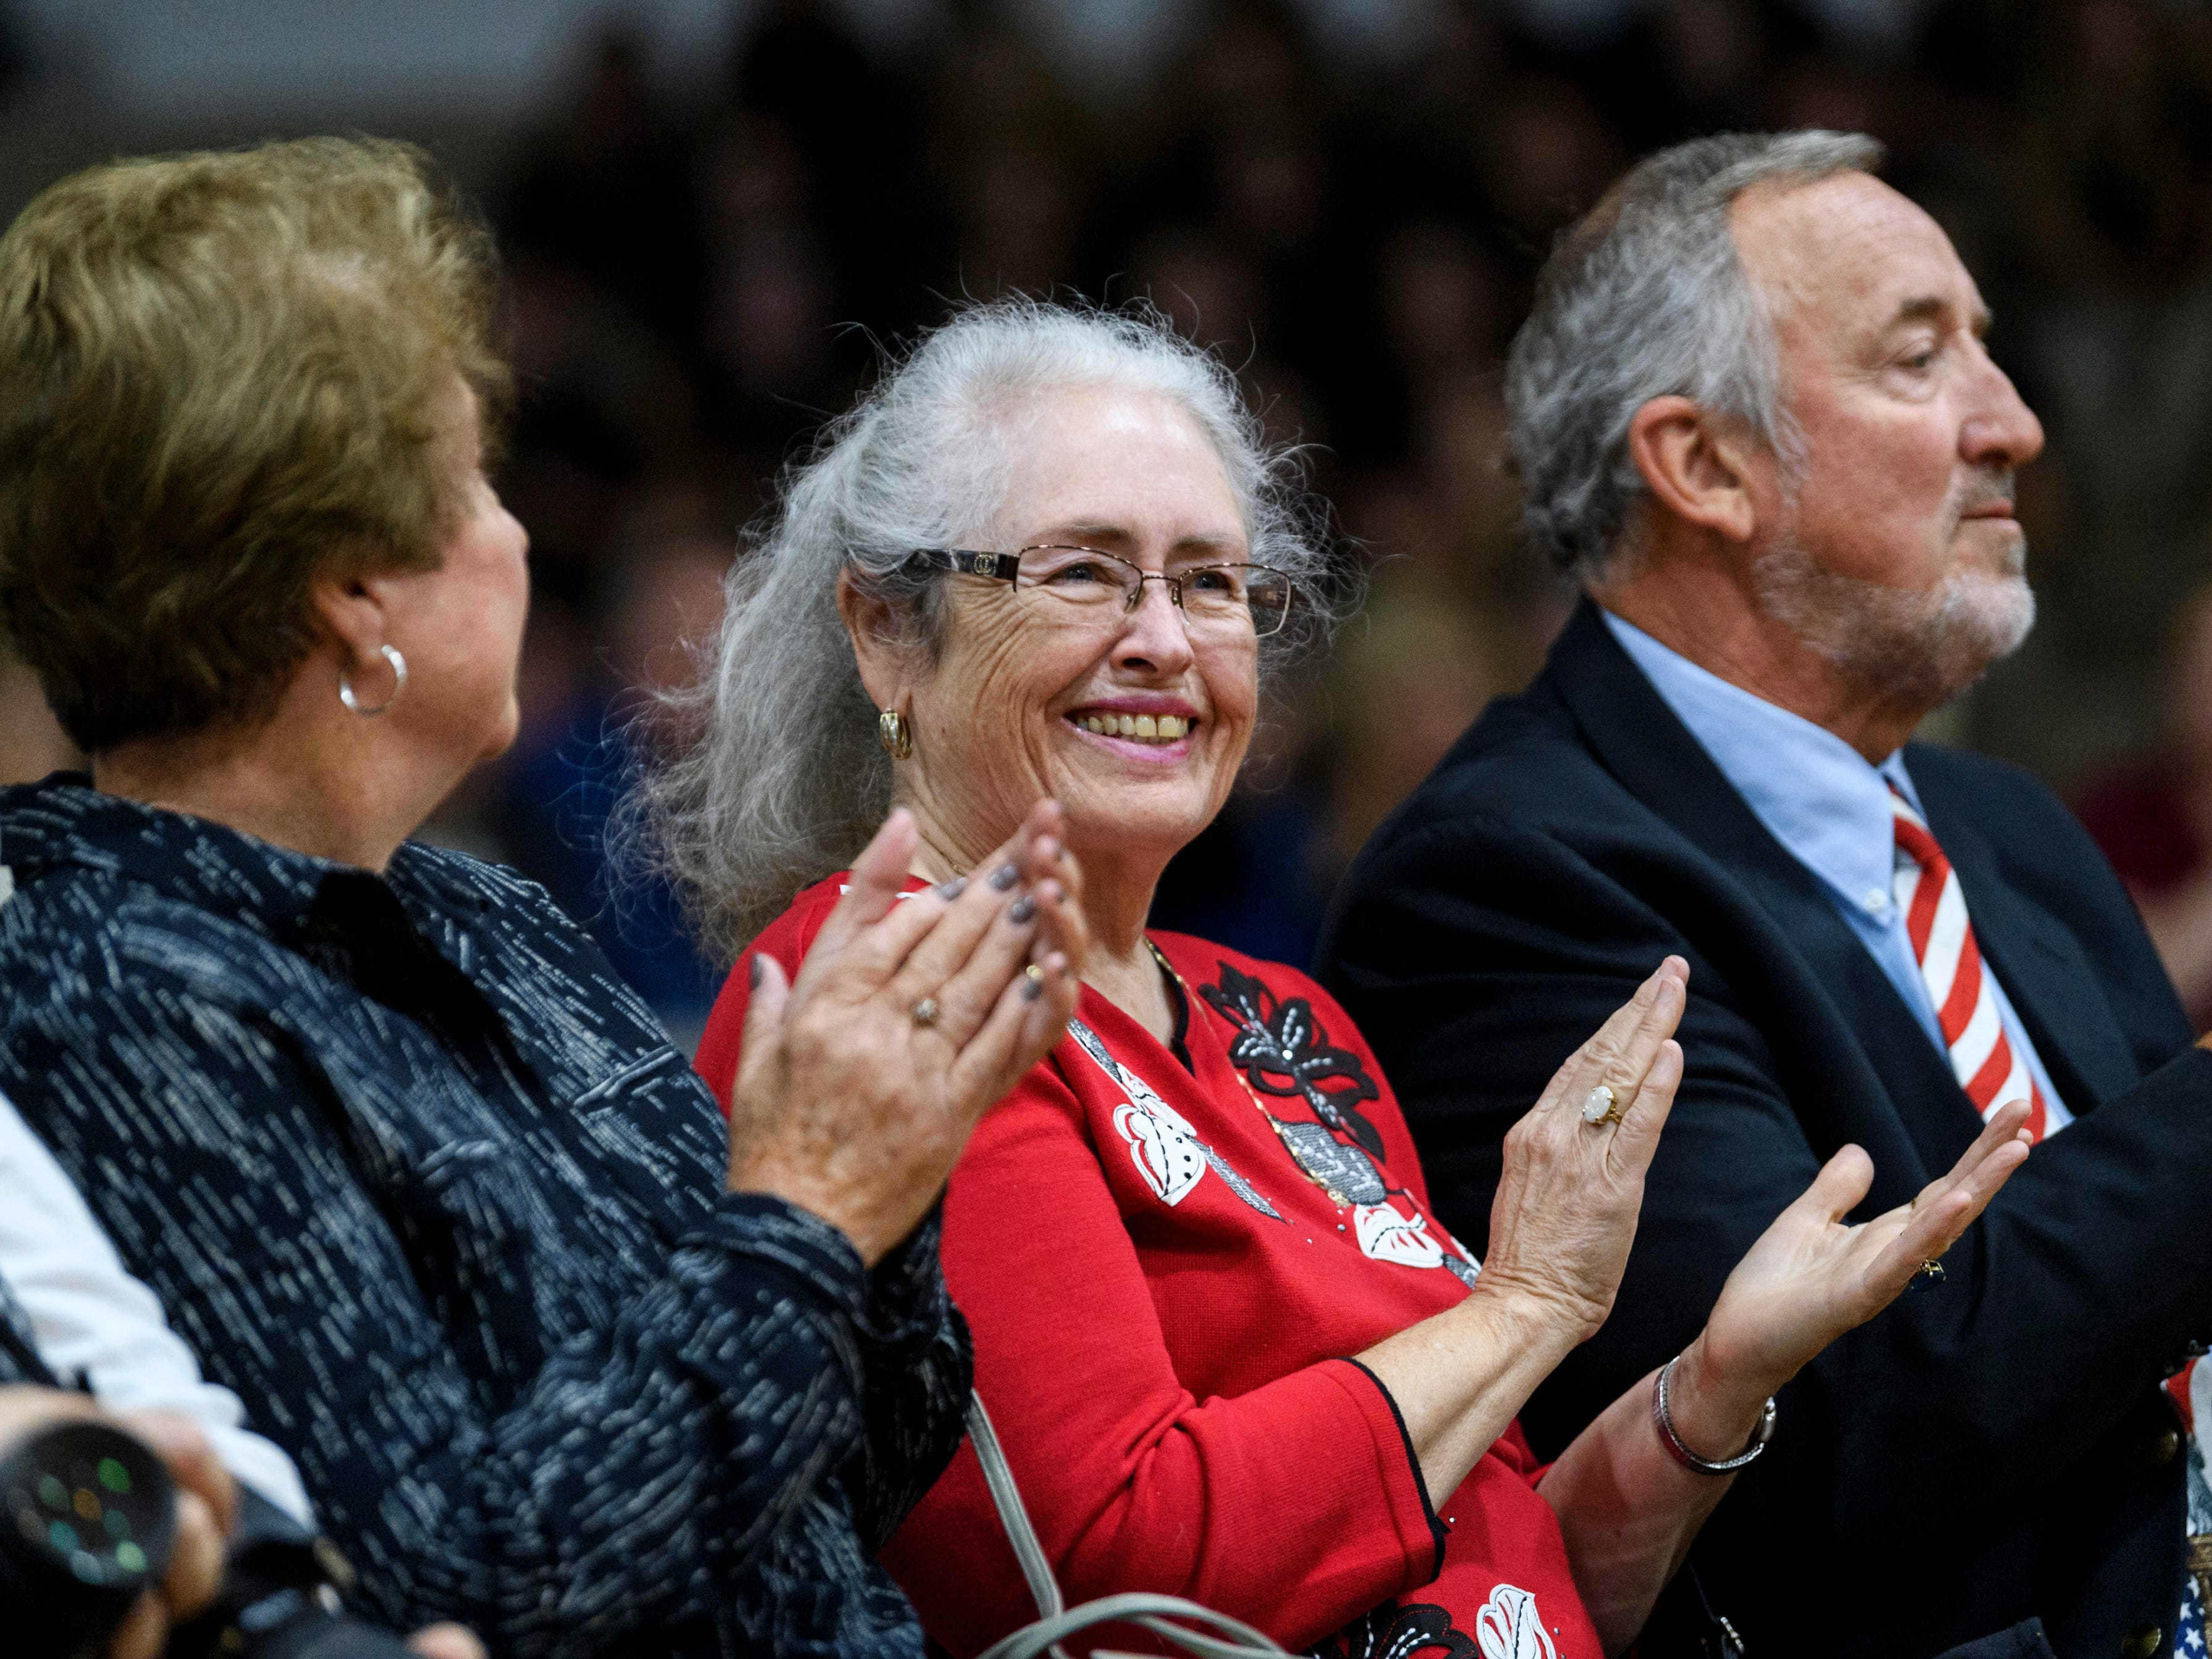 Nancy Jordan, center and David Jordan applaud their son, Justin Jordan, not pictured, as he finishes his speech during the 38th annual Veteran's Day program at South Middle School in Henderson, Ky., Monday, Nov. 12, 2018. David served as the principal of South Middle School for 15 years and Justin attended the school in the 1980s.